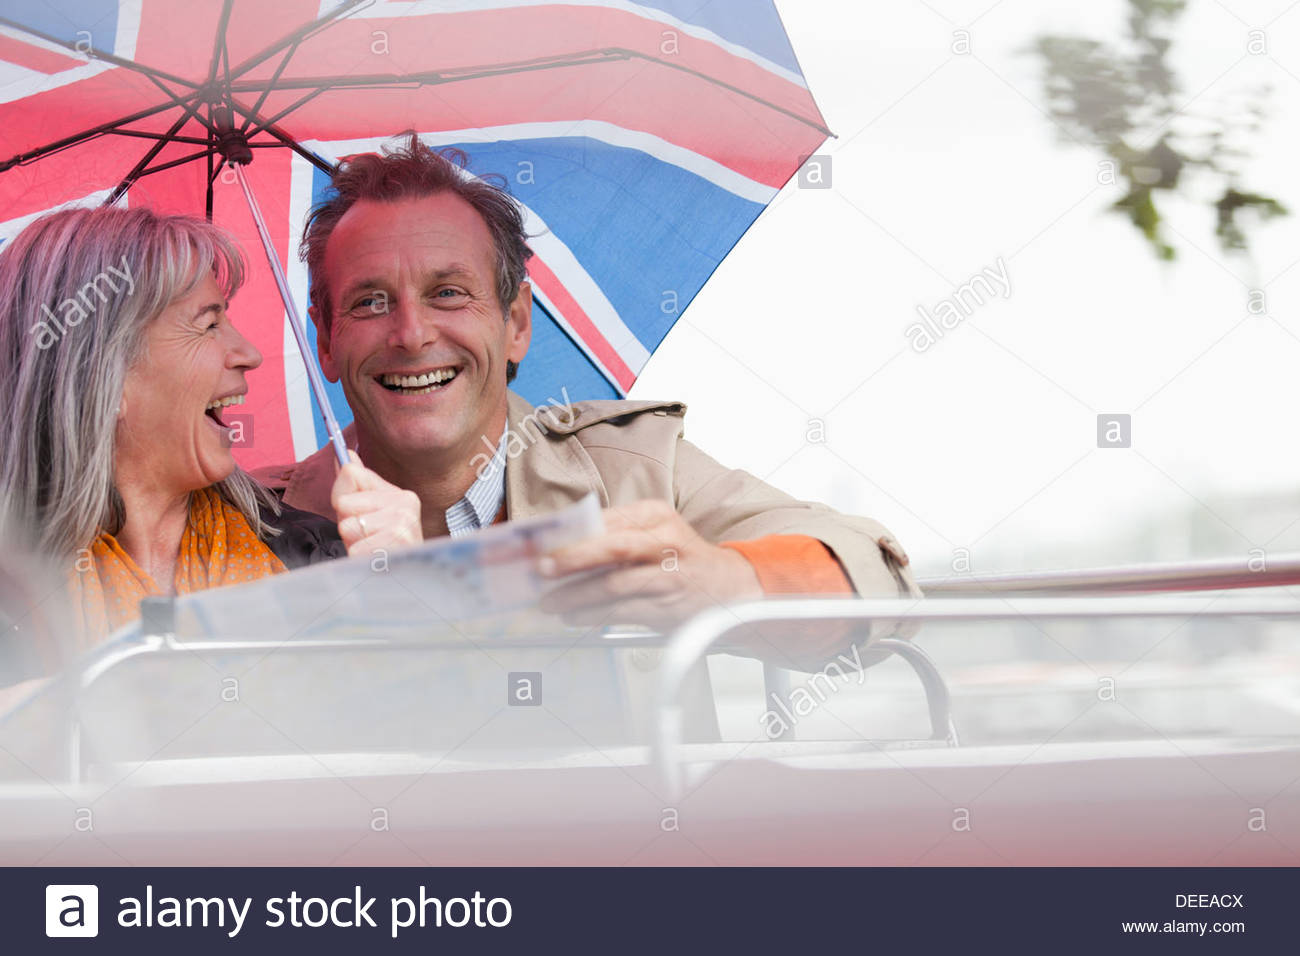 Happy couple with British flag umbrella riding double decker bus - Stock Image